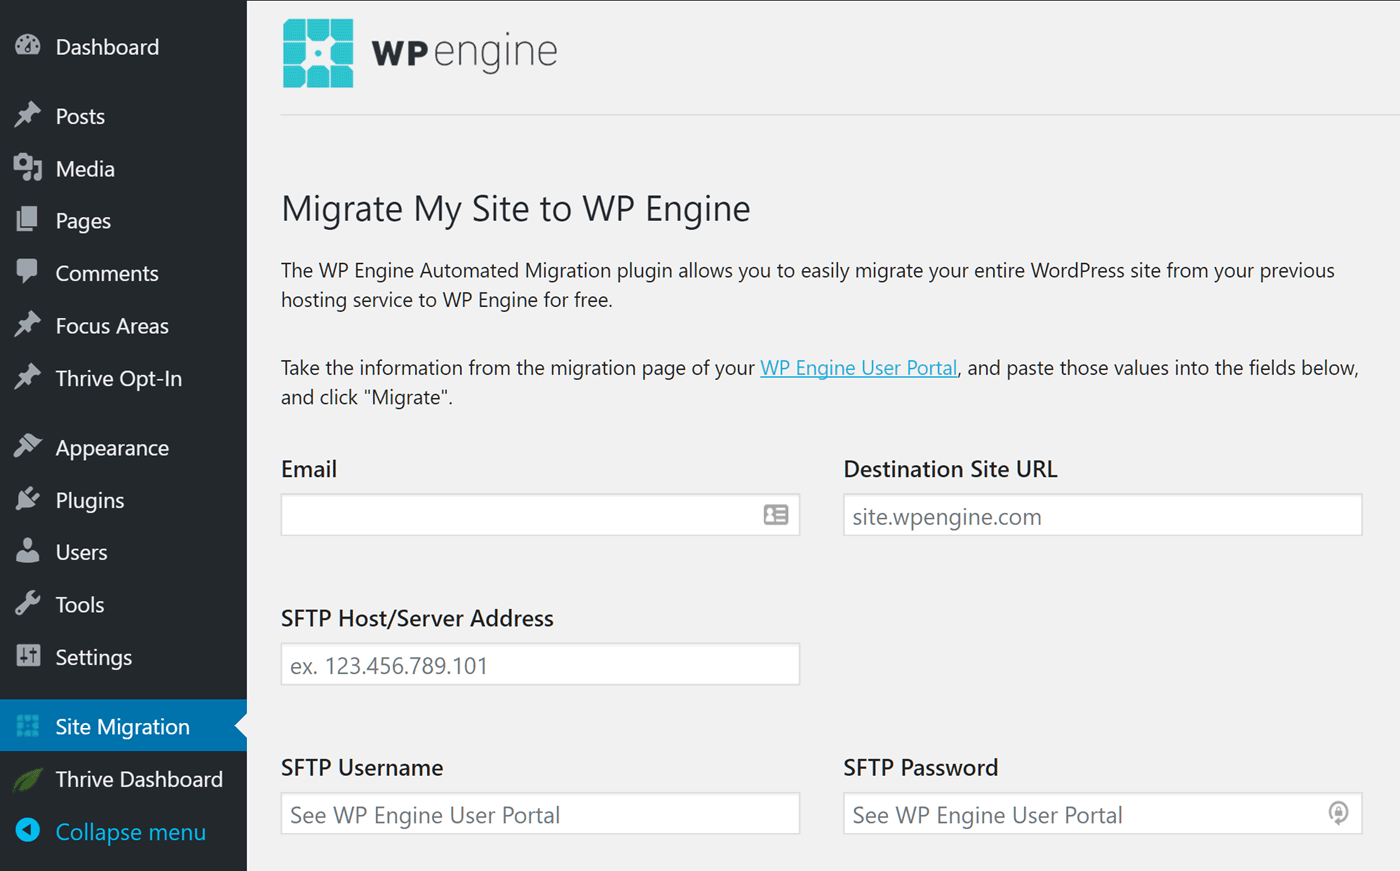 WP Engine Migration Controls